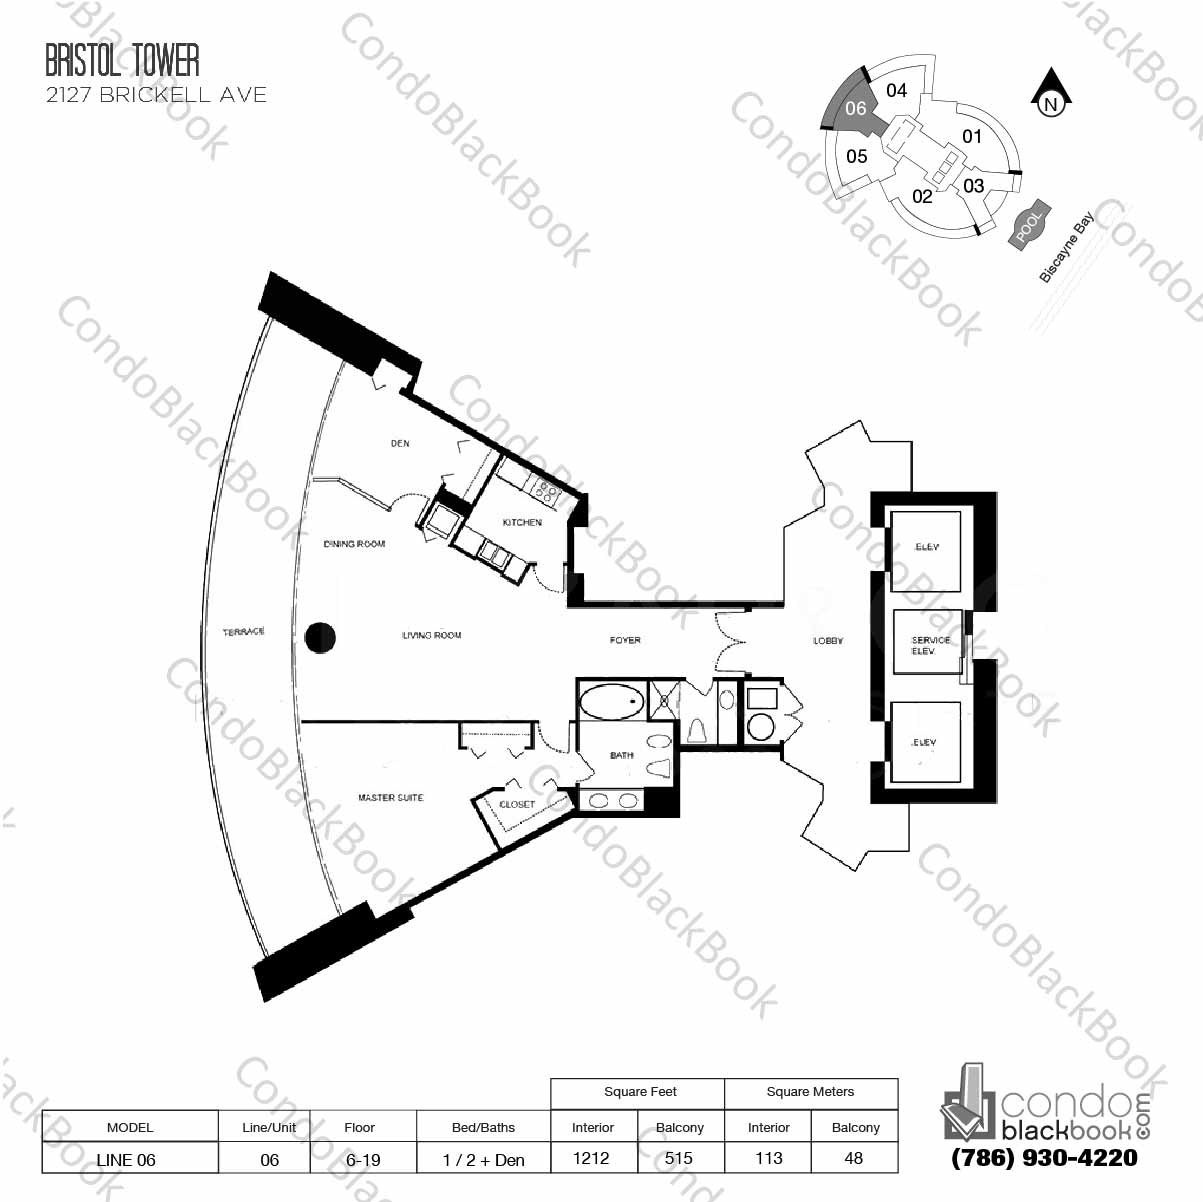 Floor plan for Bristol Tower Condominium Brickell Miami, model Line 06, line 06, 1 / 2 + Den bedrooms, 1212 sq ft